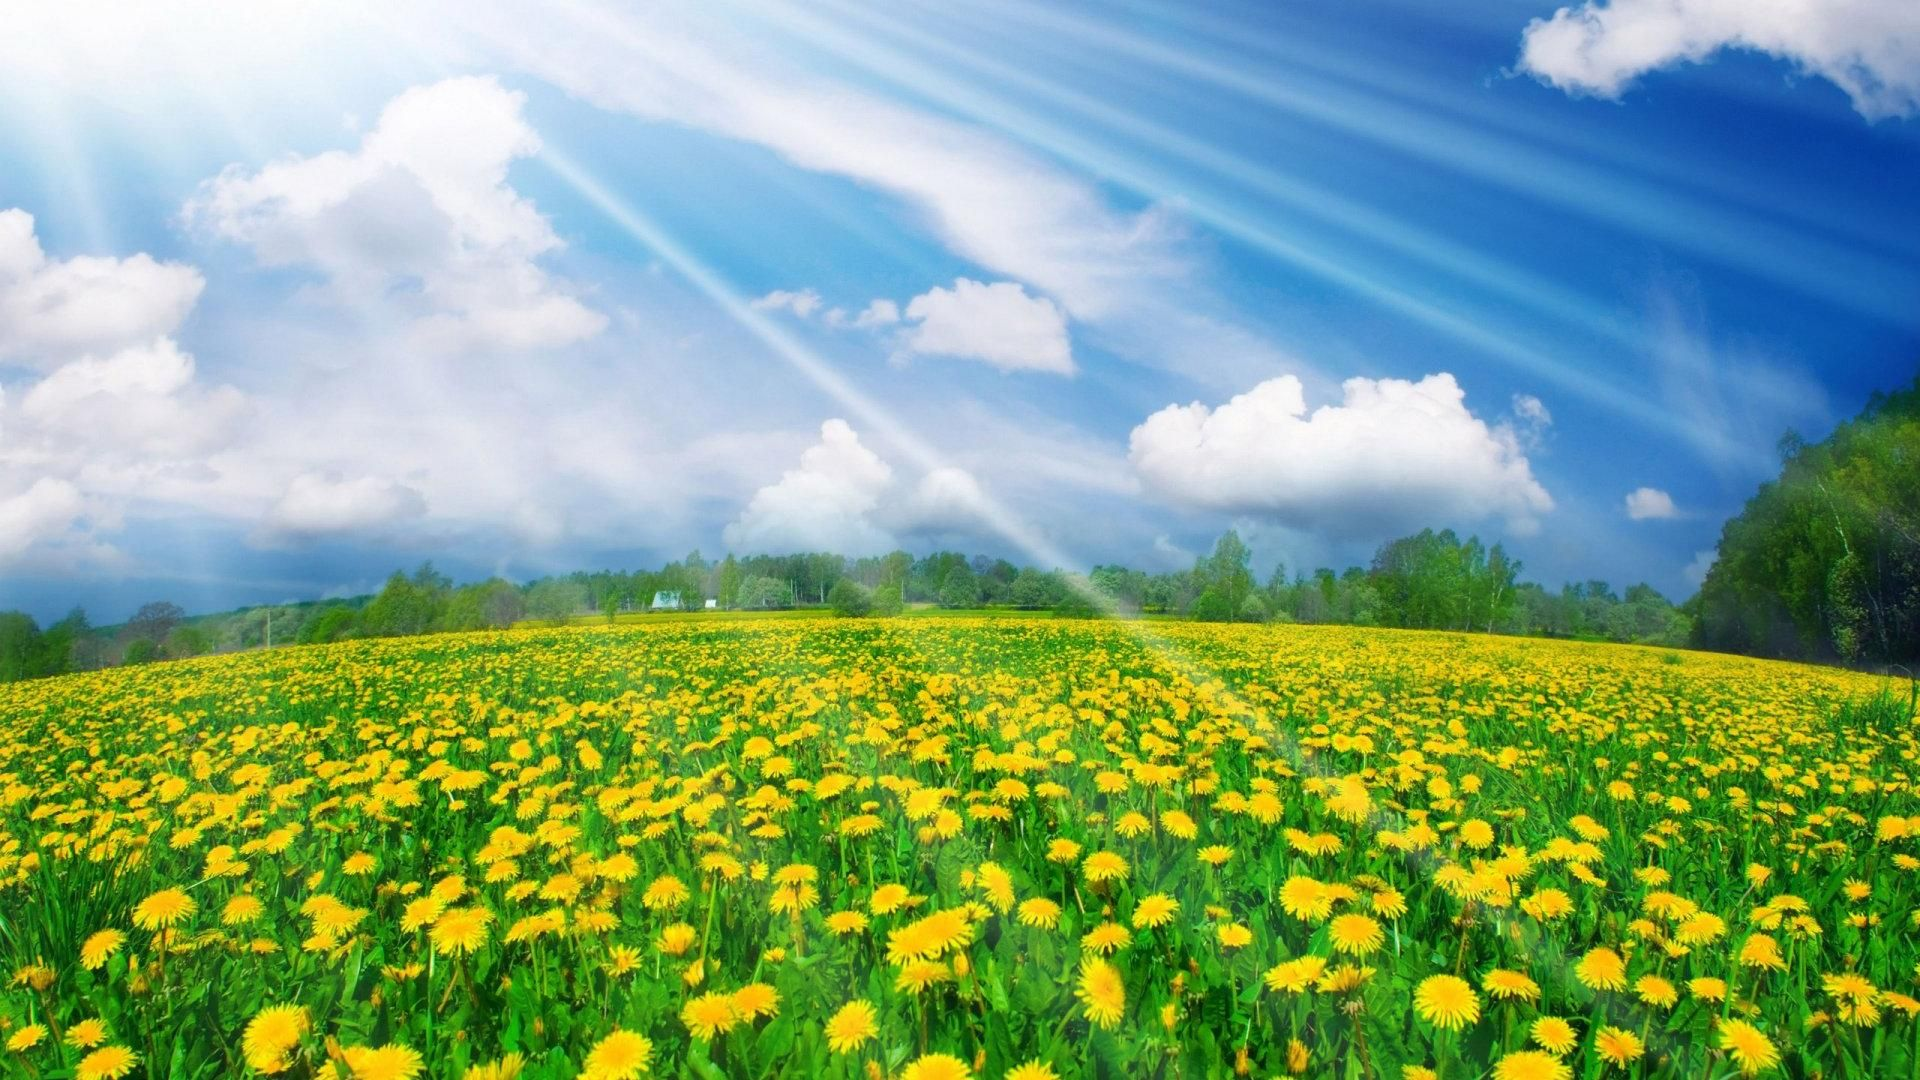 Spring Wallpapers Hd Download Free Pictures Of Spring Flowers